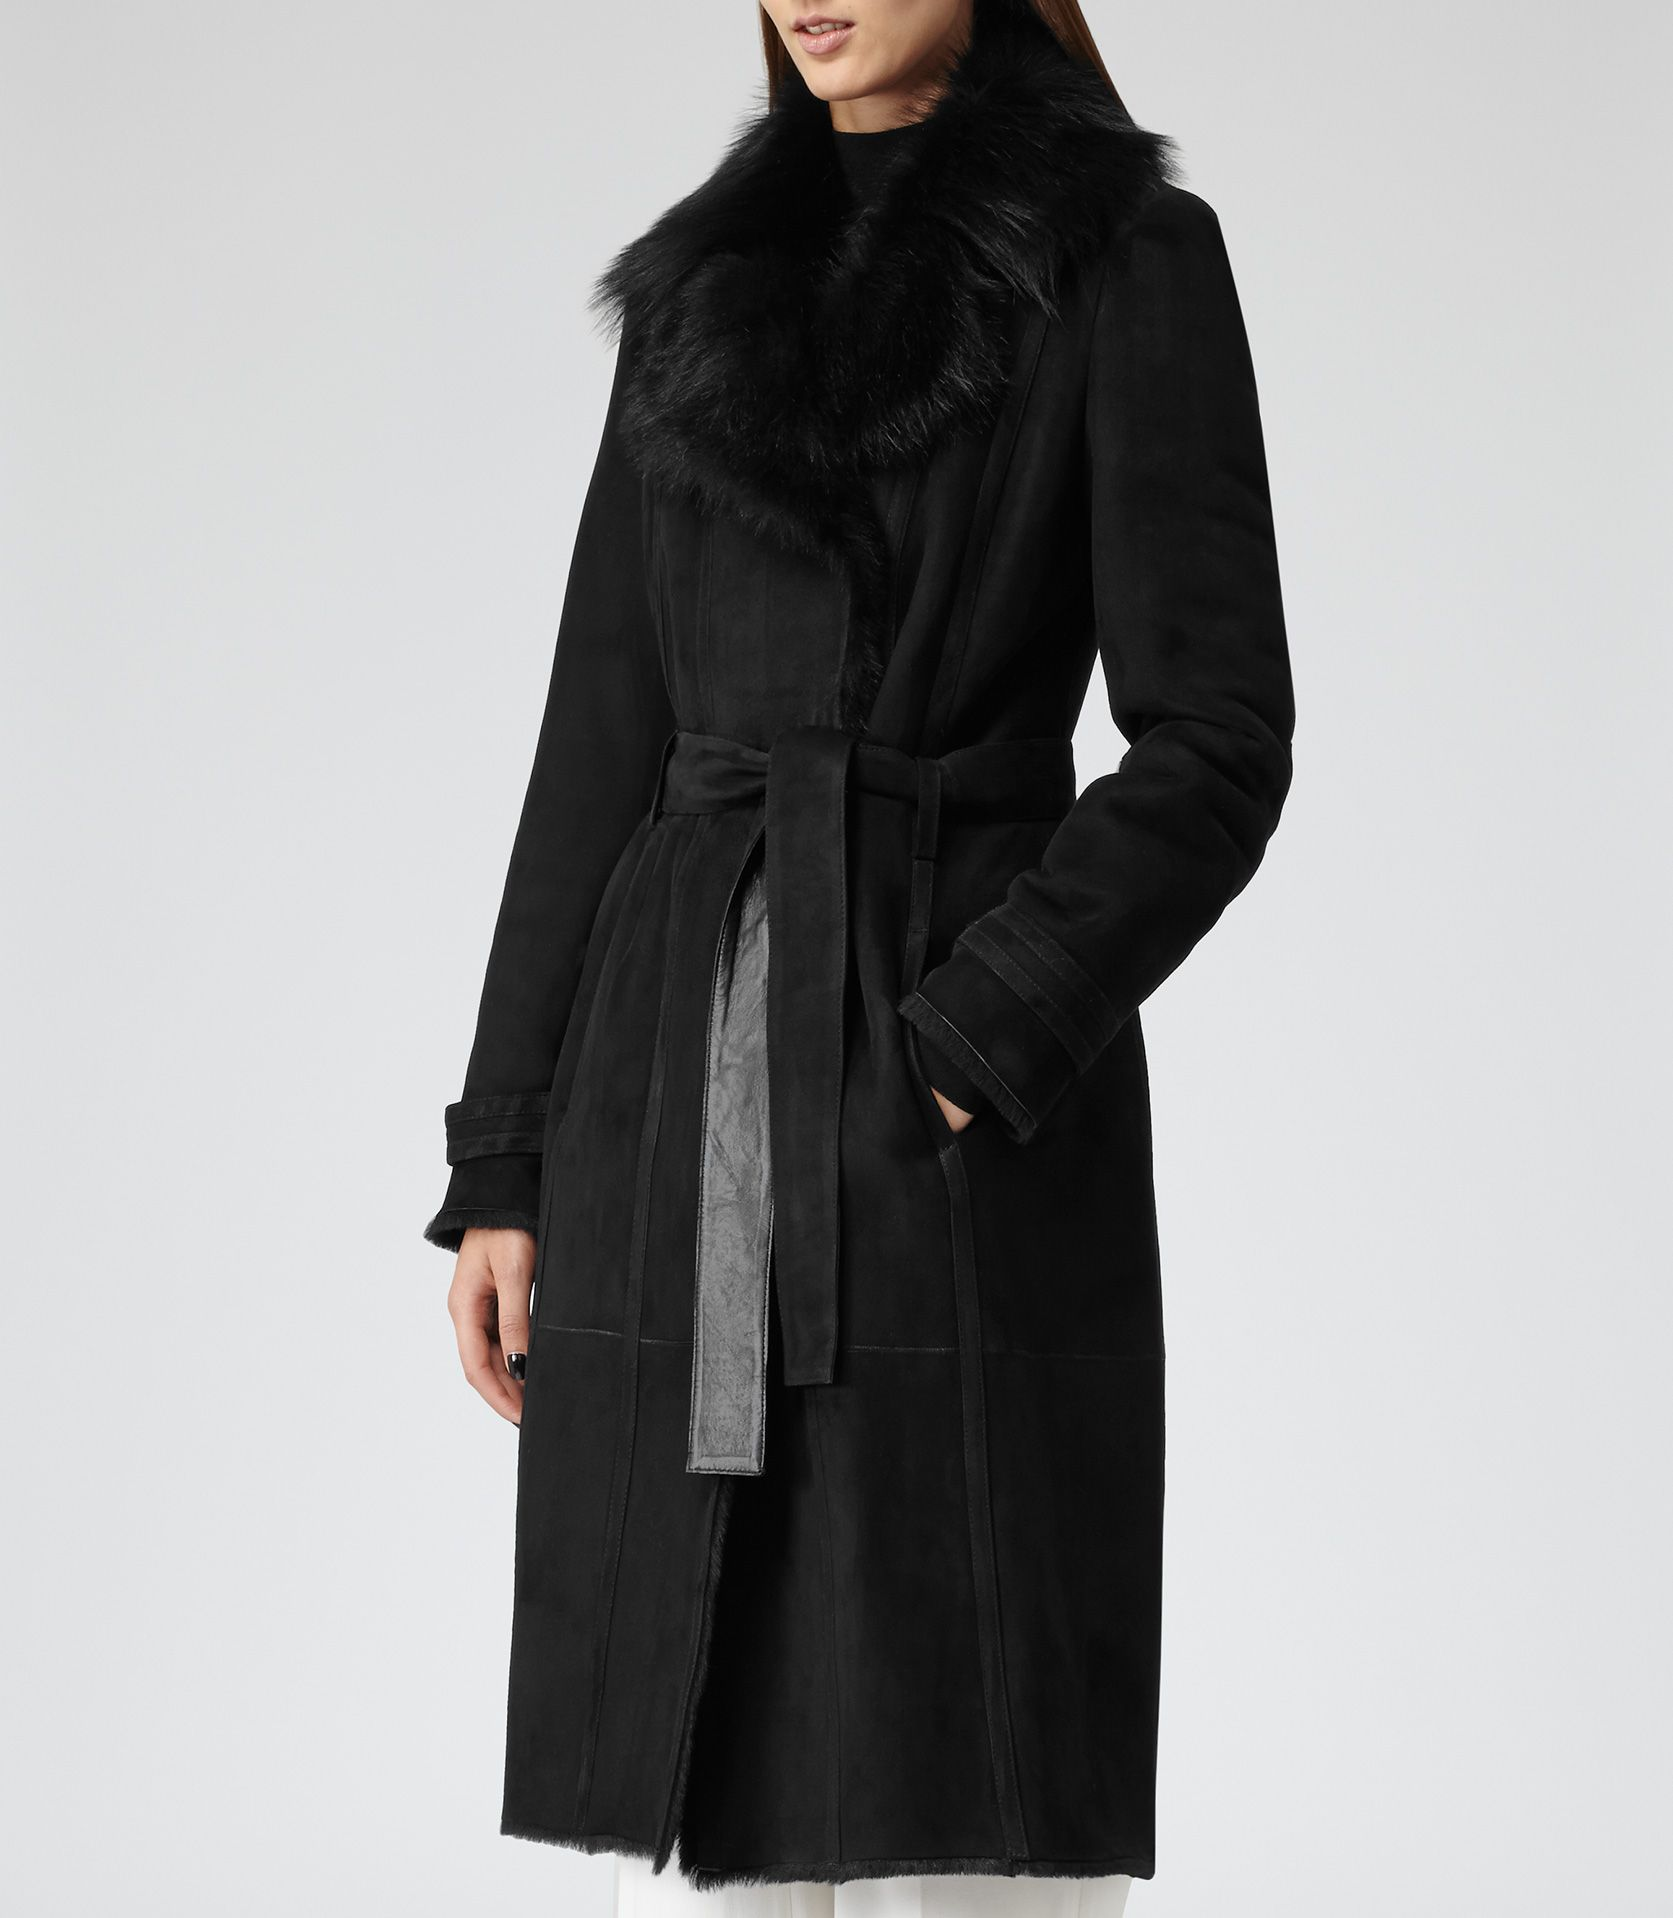 Reiss Minelli Women's Black Shearling Leather Coat | Delivery ...